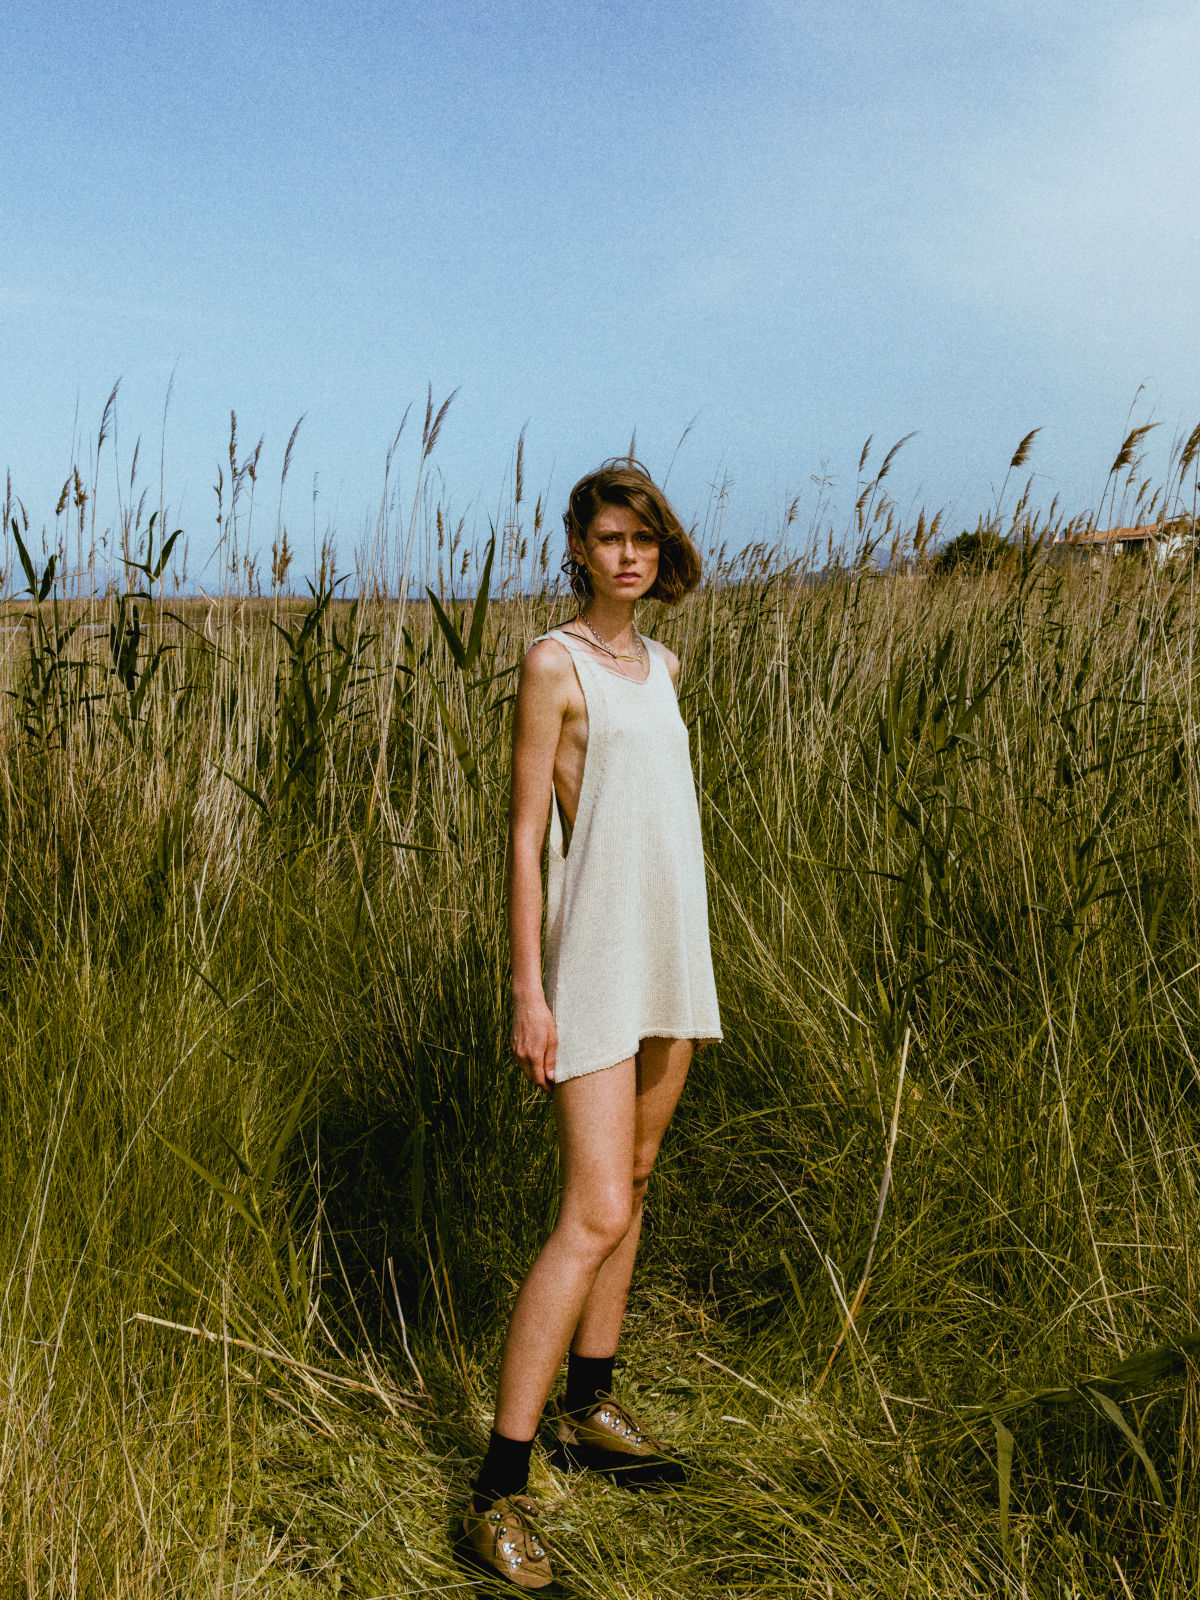 Knitted tank top/dress